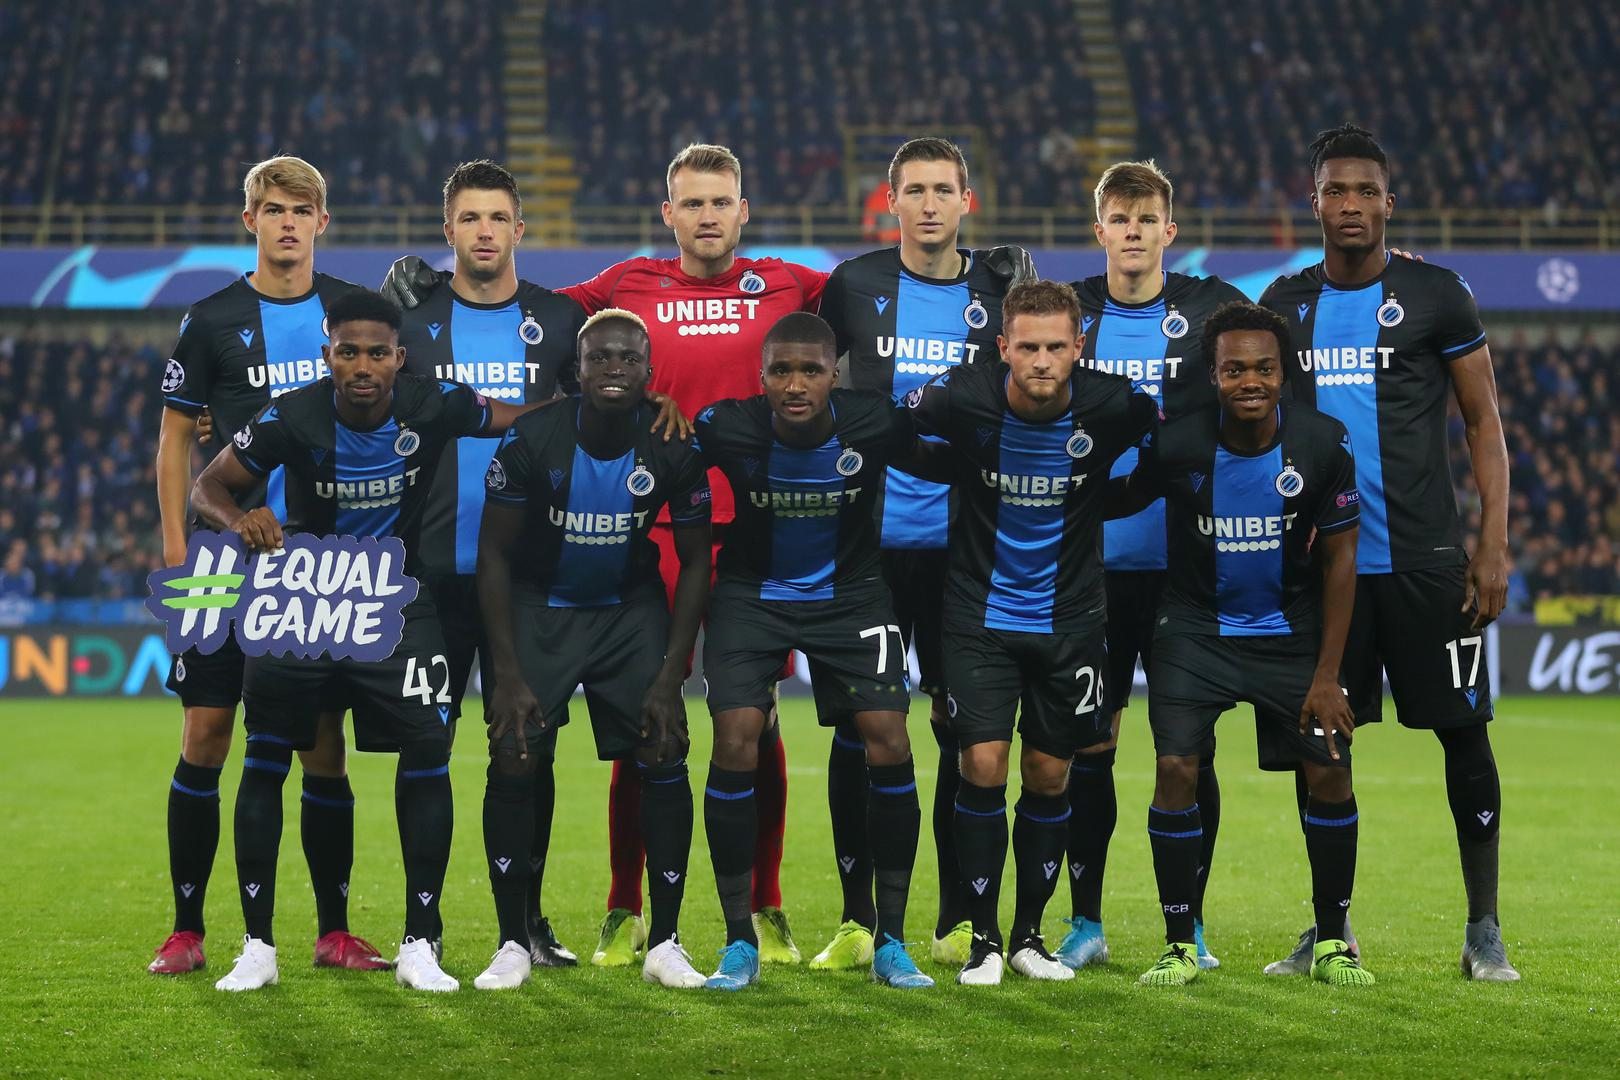 Club Brugge line up before their Champions League match against Paris Saint-Germain in 2019.